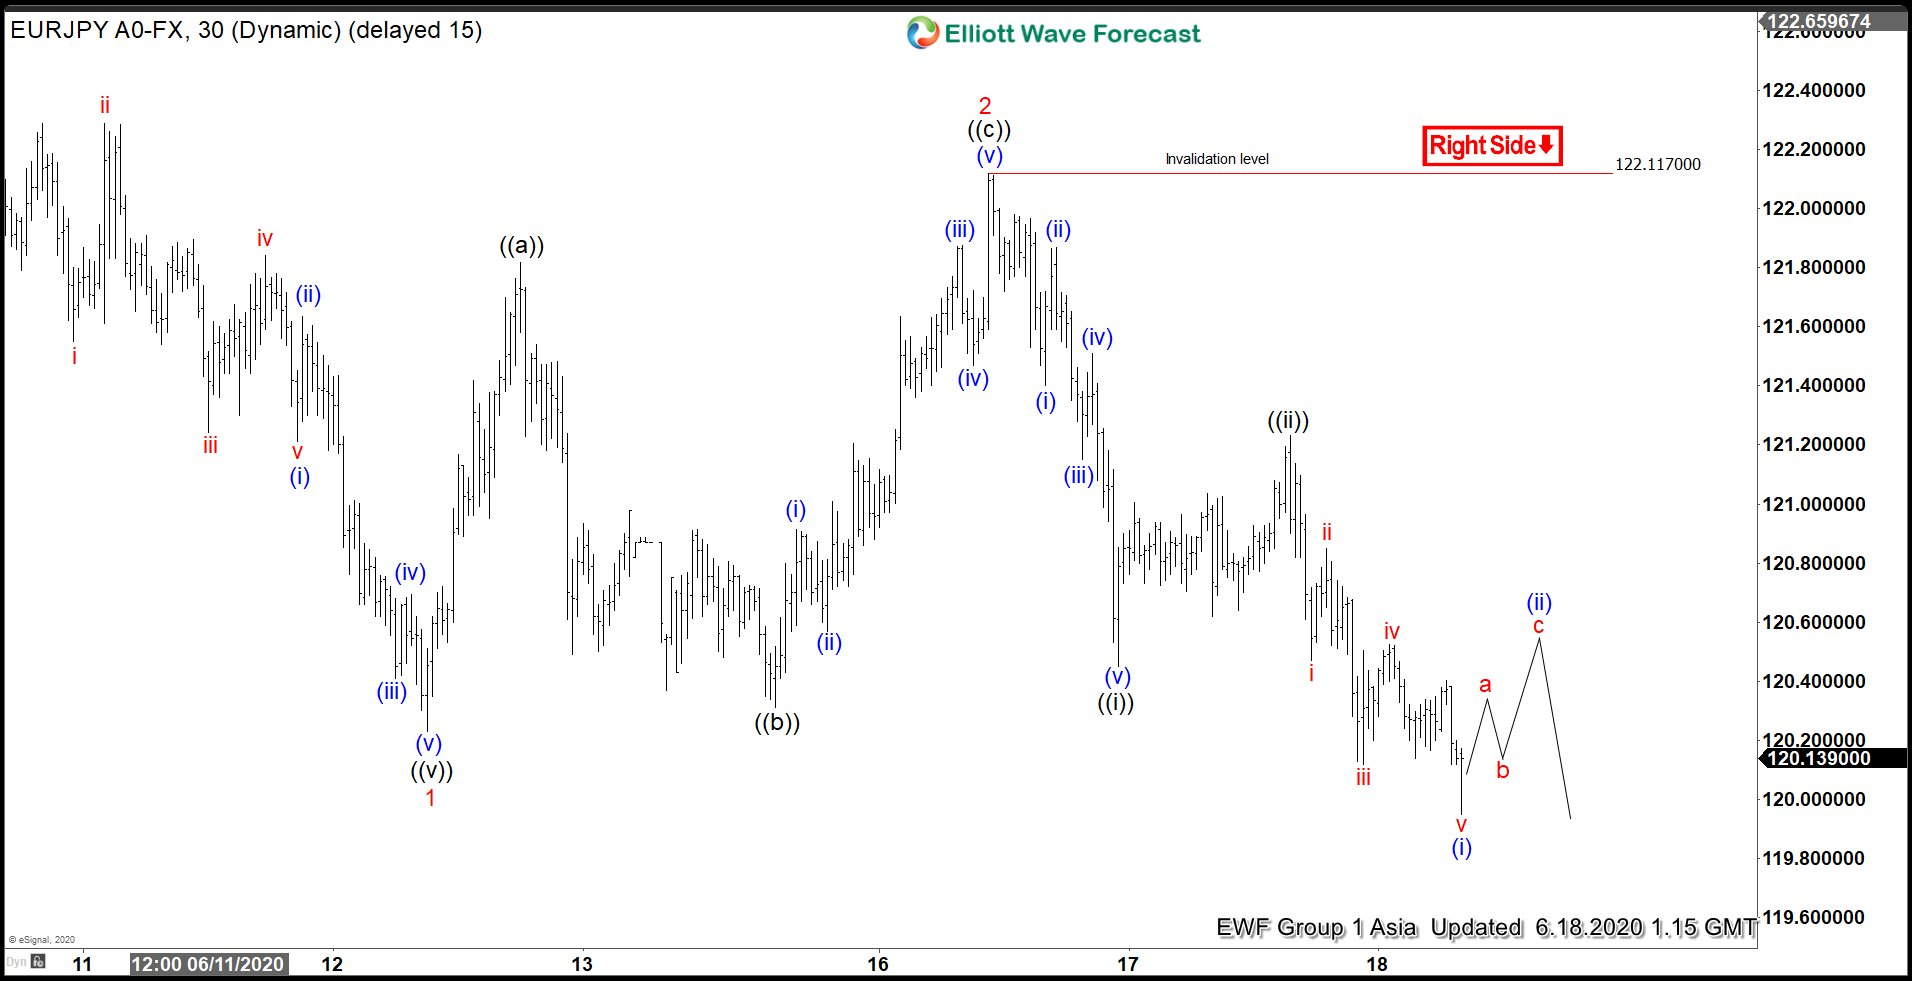 EURJPY 18 June Elliott Wave Chart